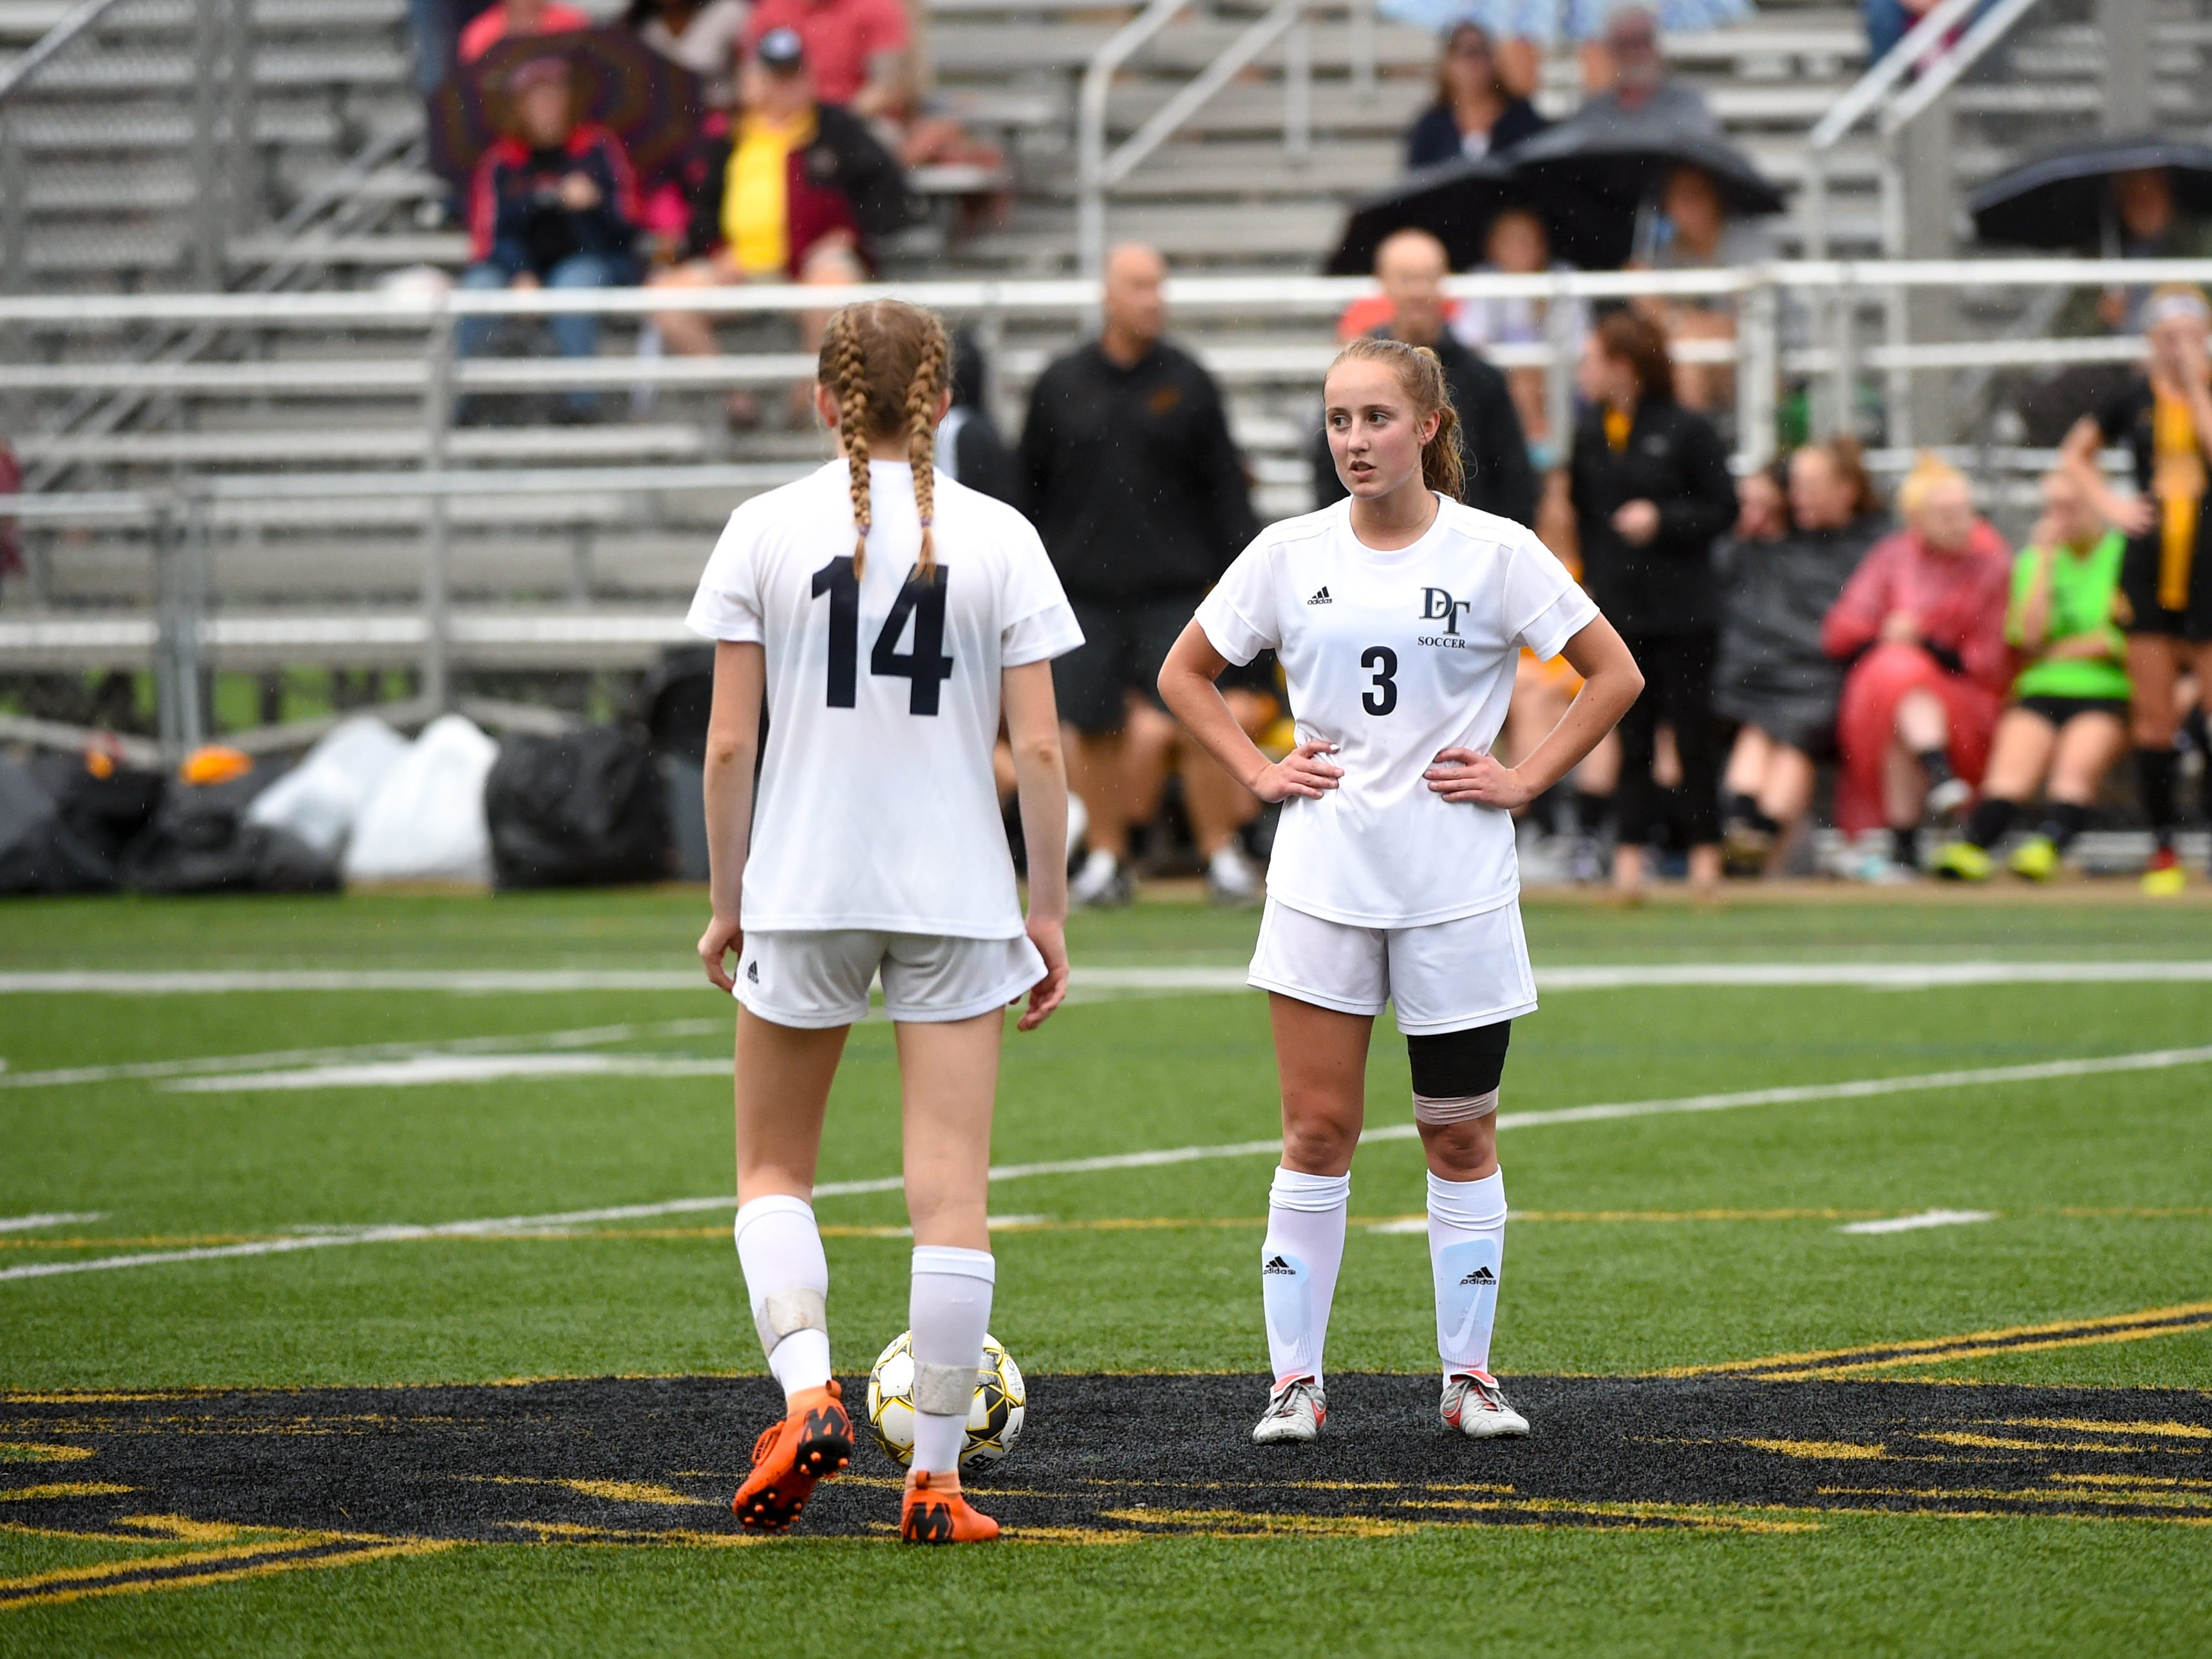 Dallastown's Ashley Robinson (14) and Caoline Muth (3) get ready to kick the ball off during the girls soccer game between Red Lion and Dallastown, October 11, 2018. The Lady Lions beat the Wildcats 4-0.